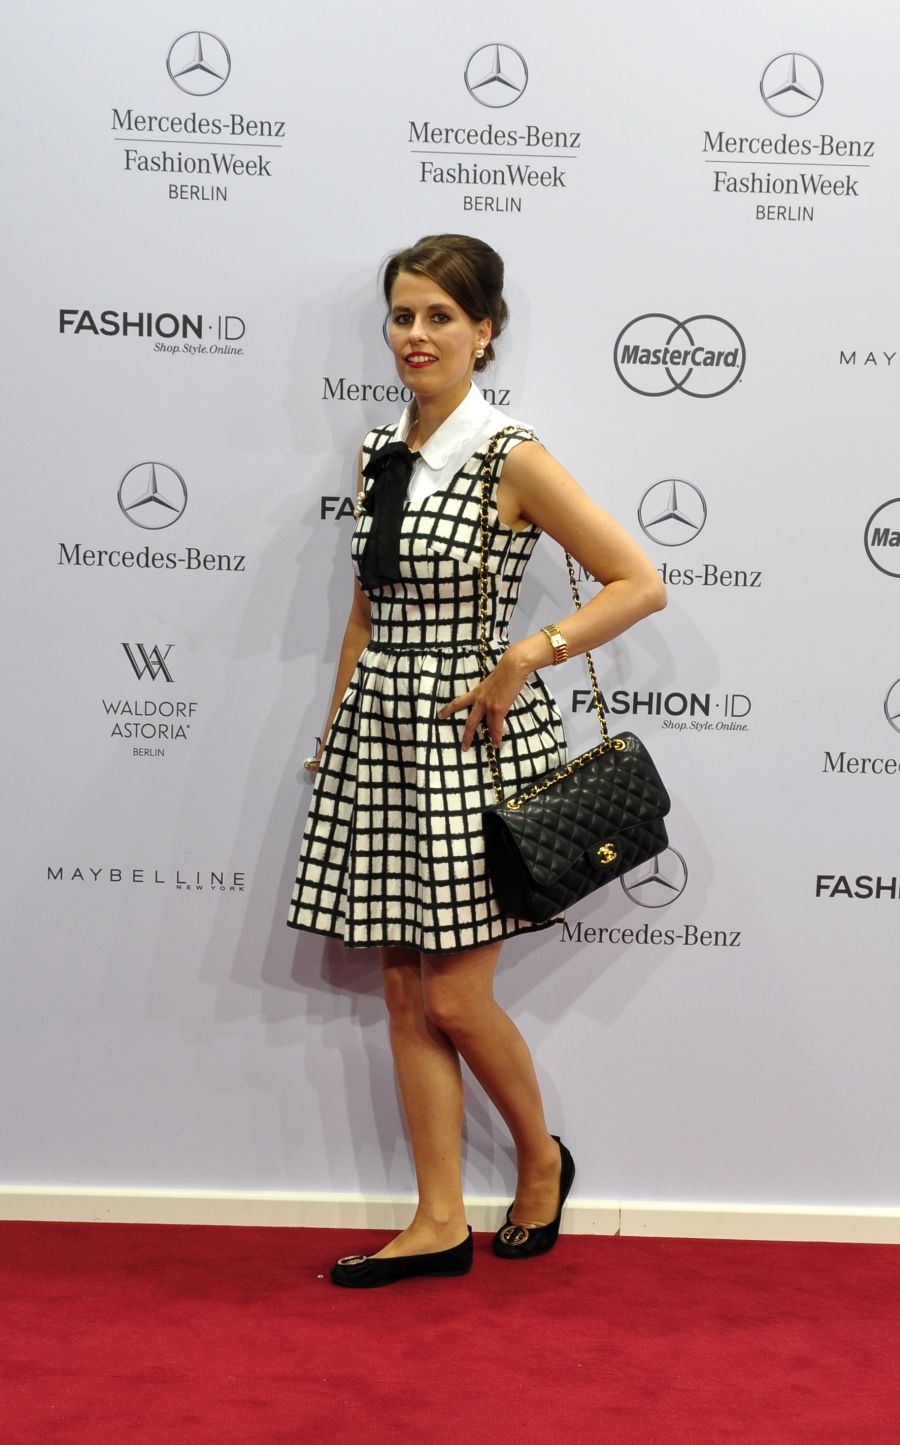 Mercedes Benz Fashion Week, Roter Teppich Fashionblogger